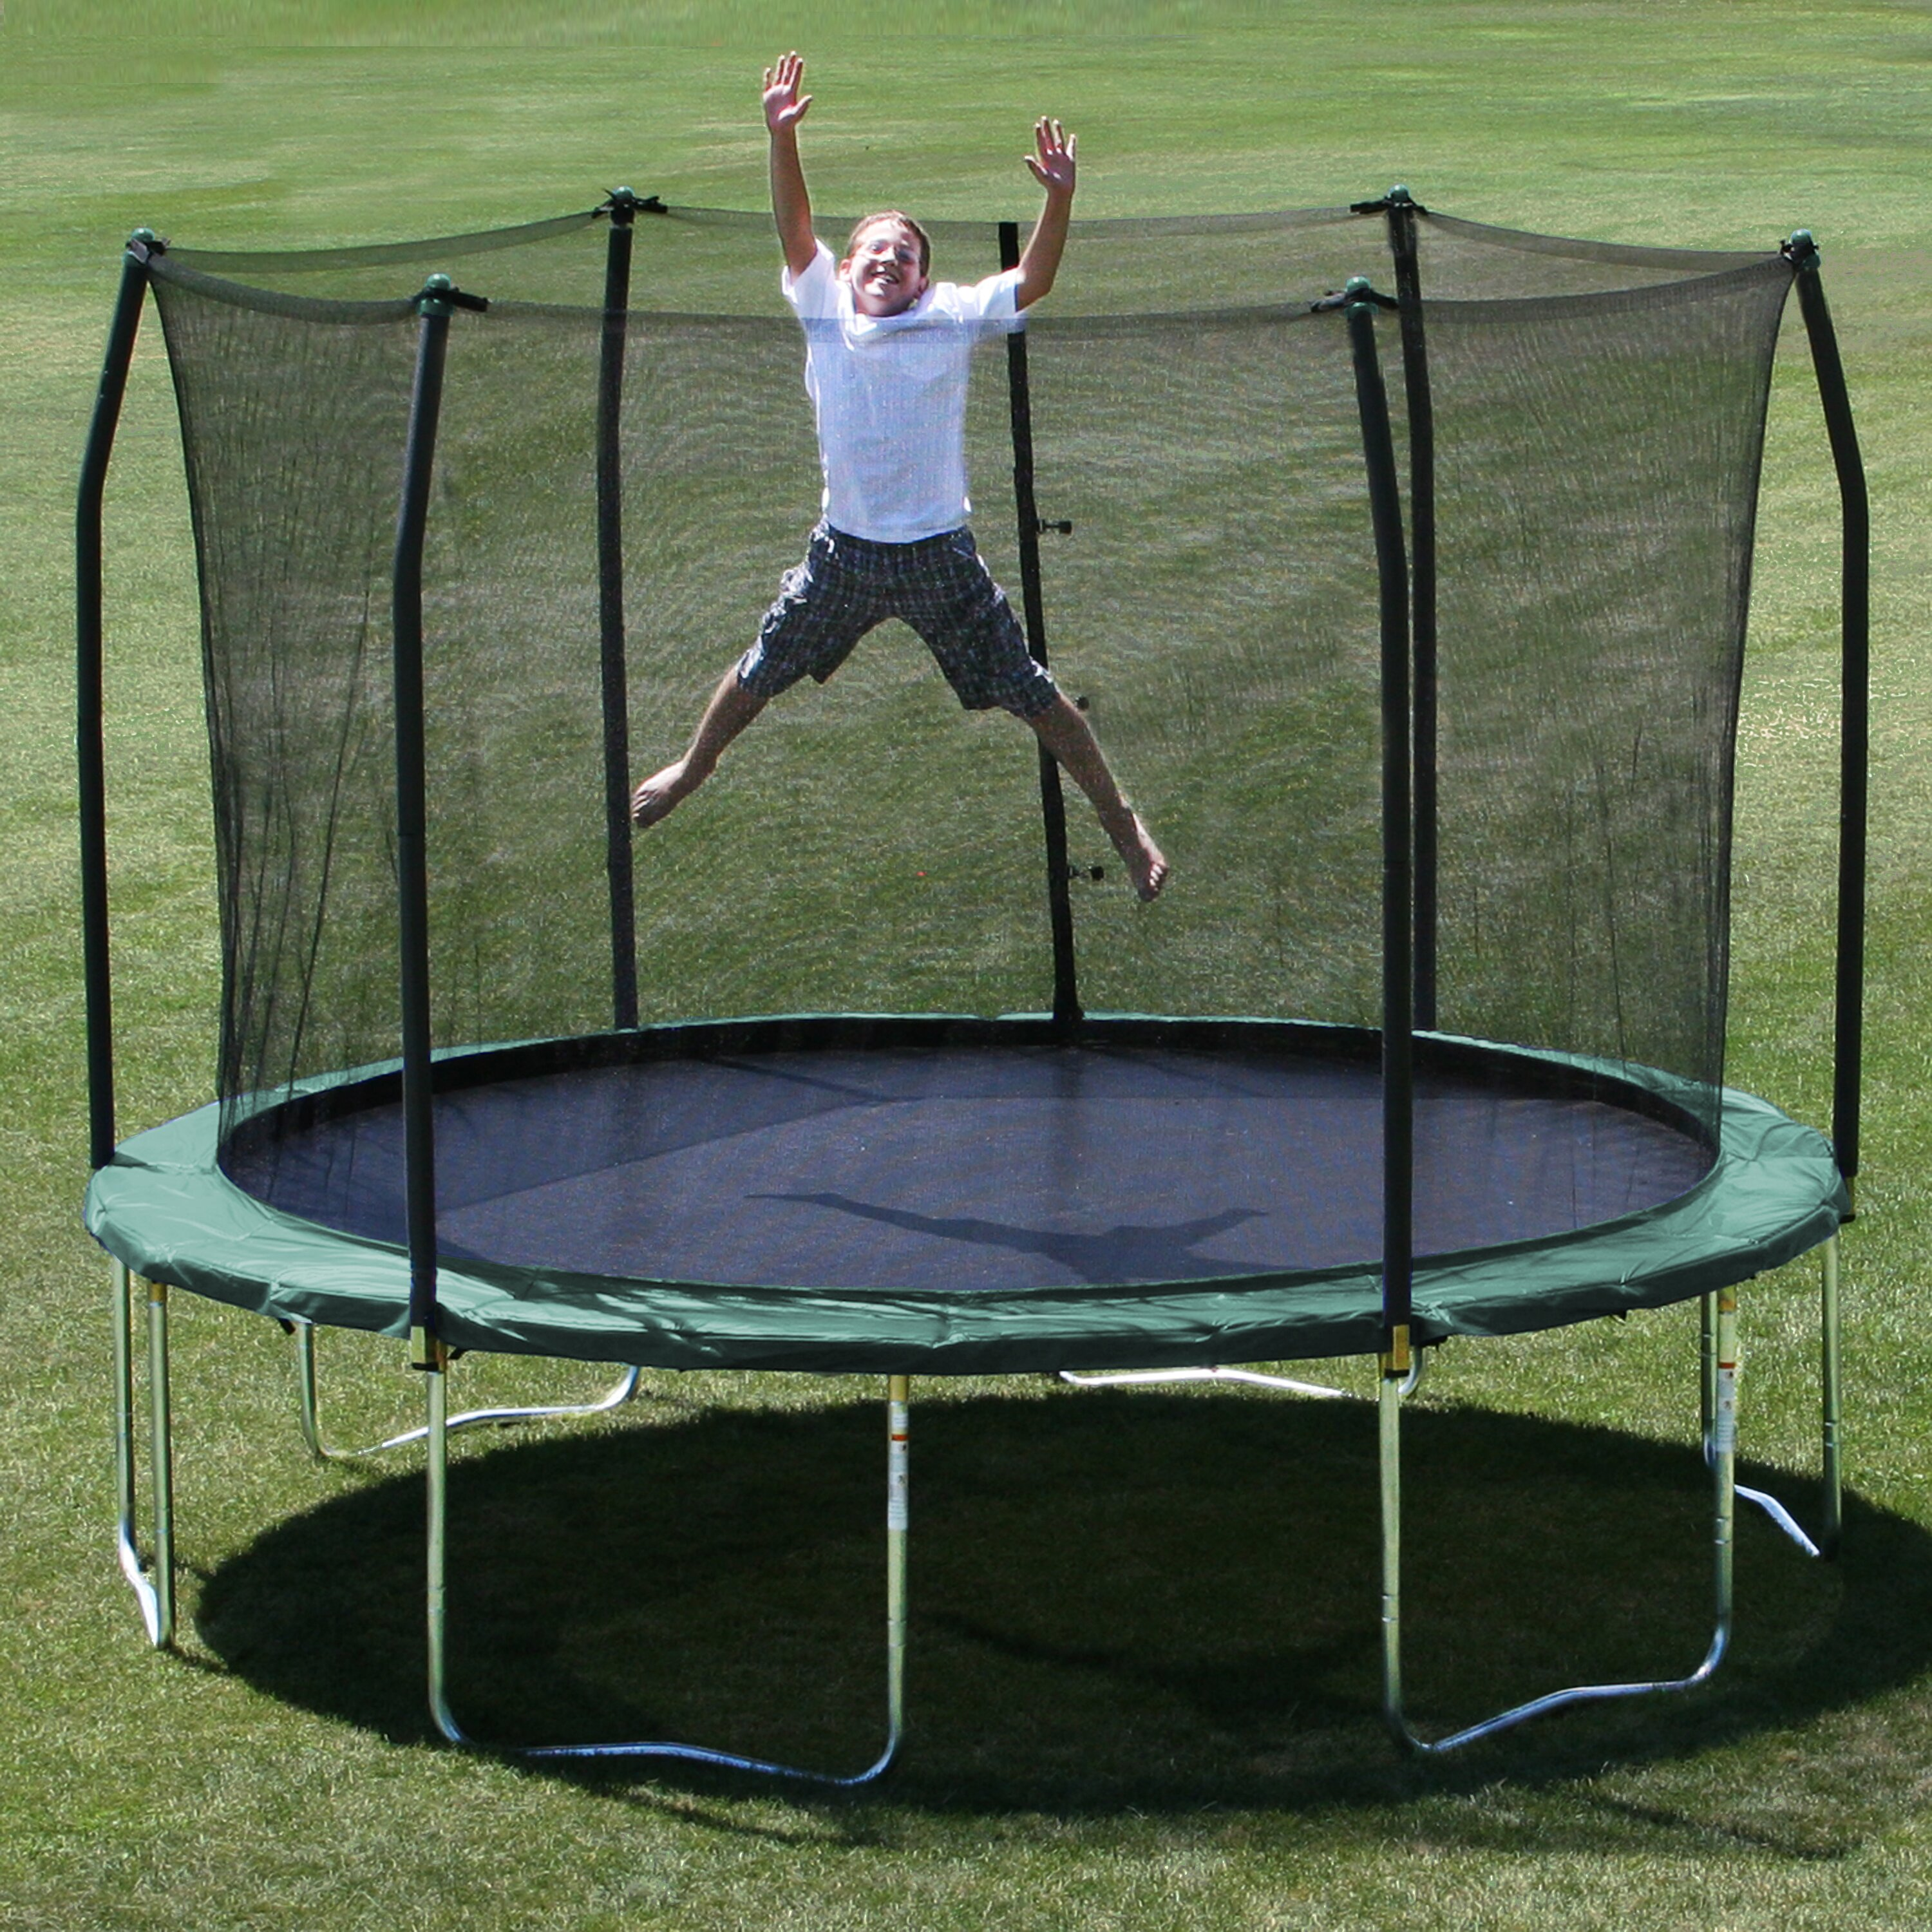 Top 10 Best Oval Trampoline With Safety Enclosures Our Top: Skywalker 12' Trampoline With Safety Enclosure & Reviews